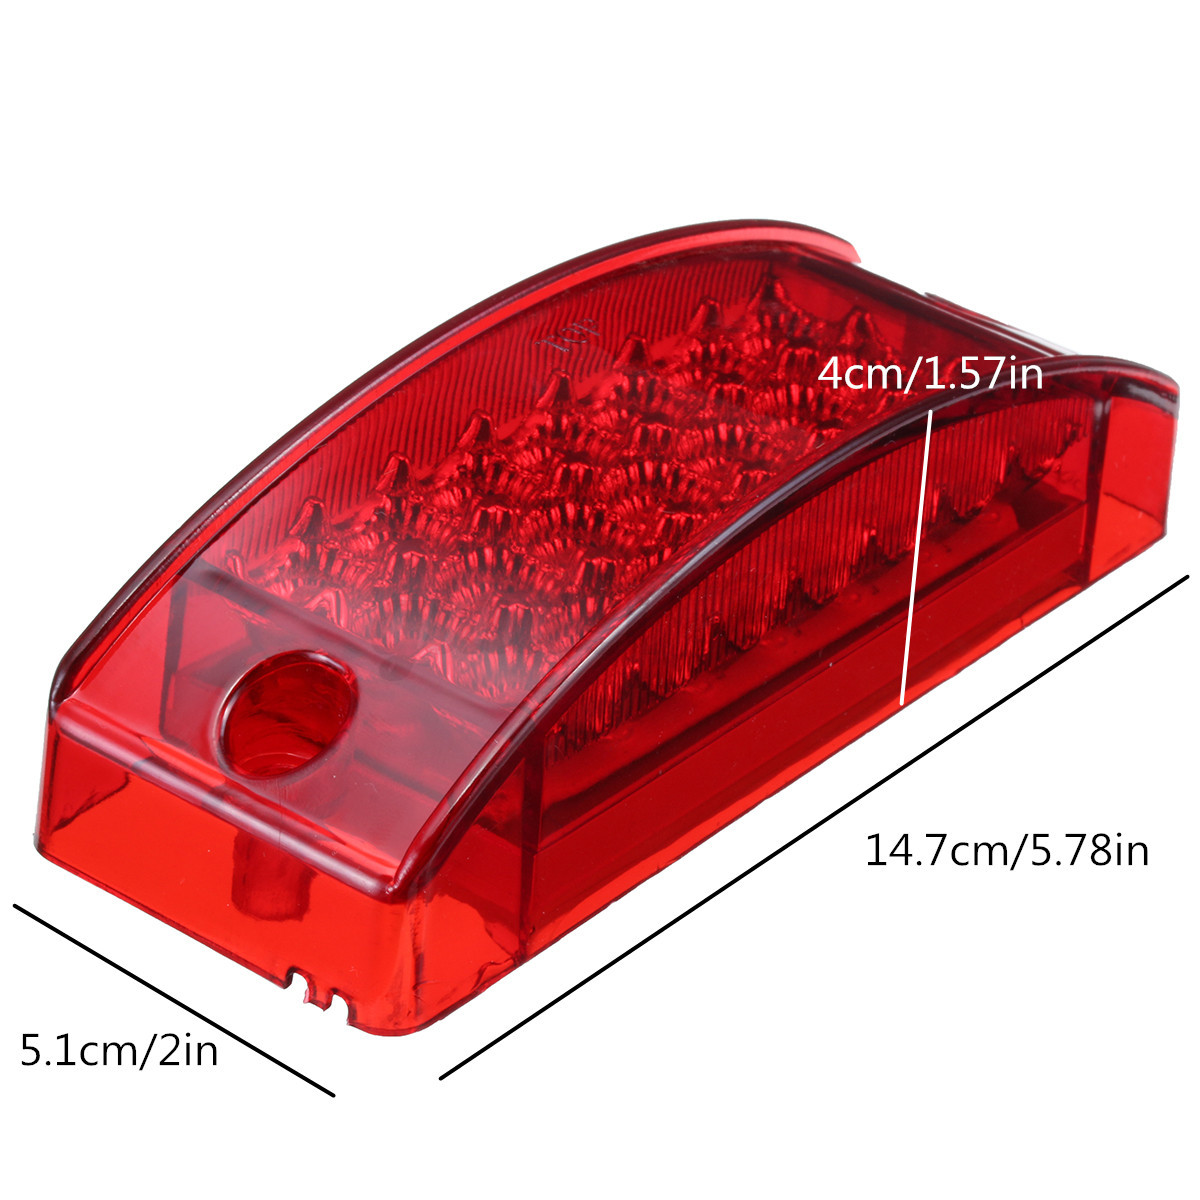 6 21 Led Side Marker Stop Turn Tail Light Clearance Reflector Trailer With 2 Wire 039